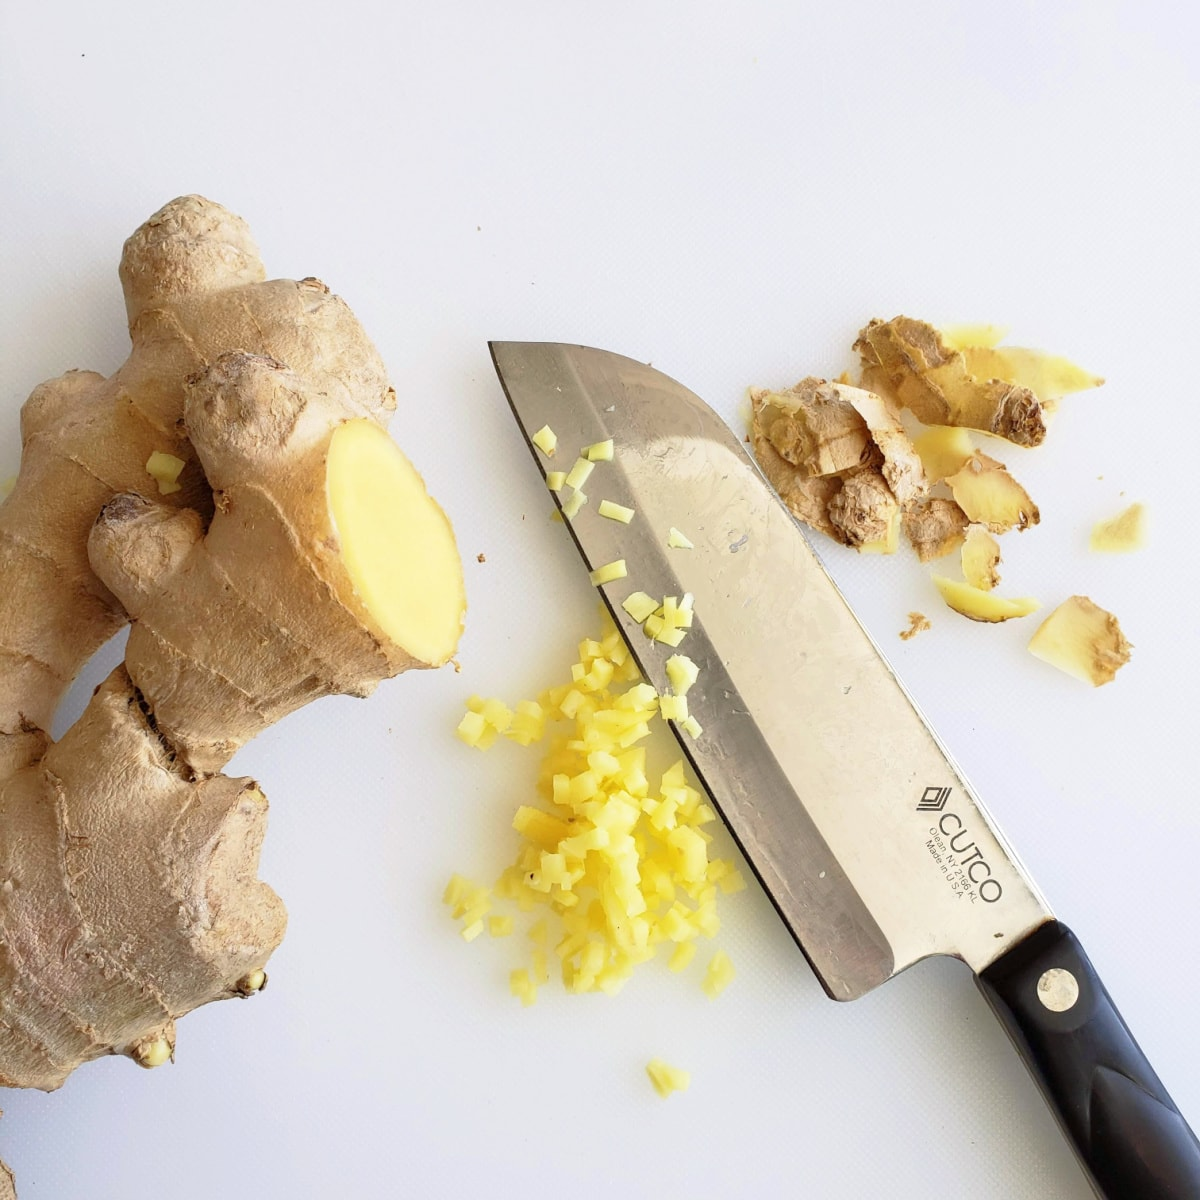 Peel the ginger skin off and finely mince it with a knife on a white cutting board